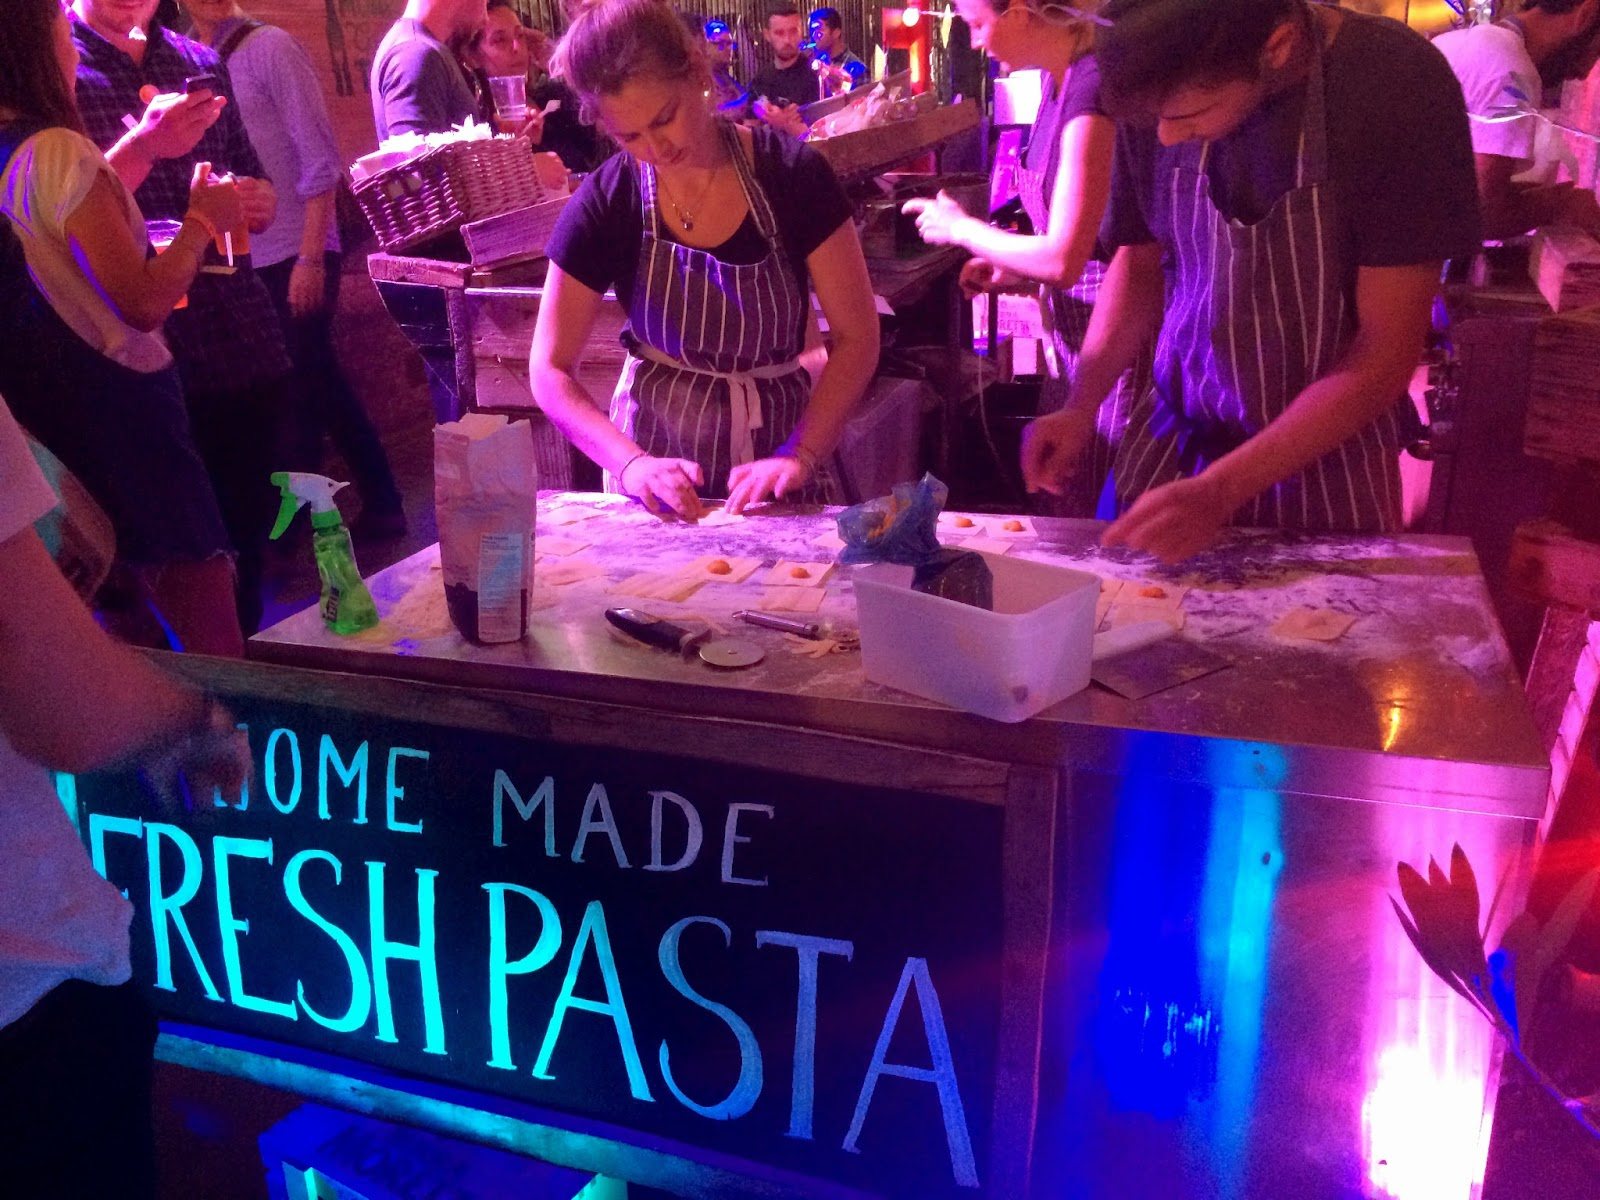 Fresh pasta stand at the Moretti Gran Tour